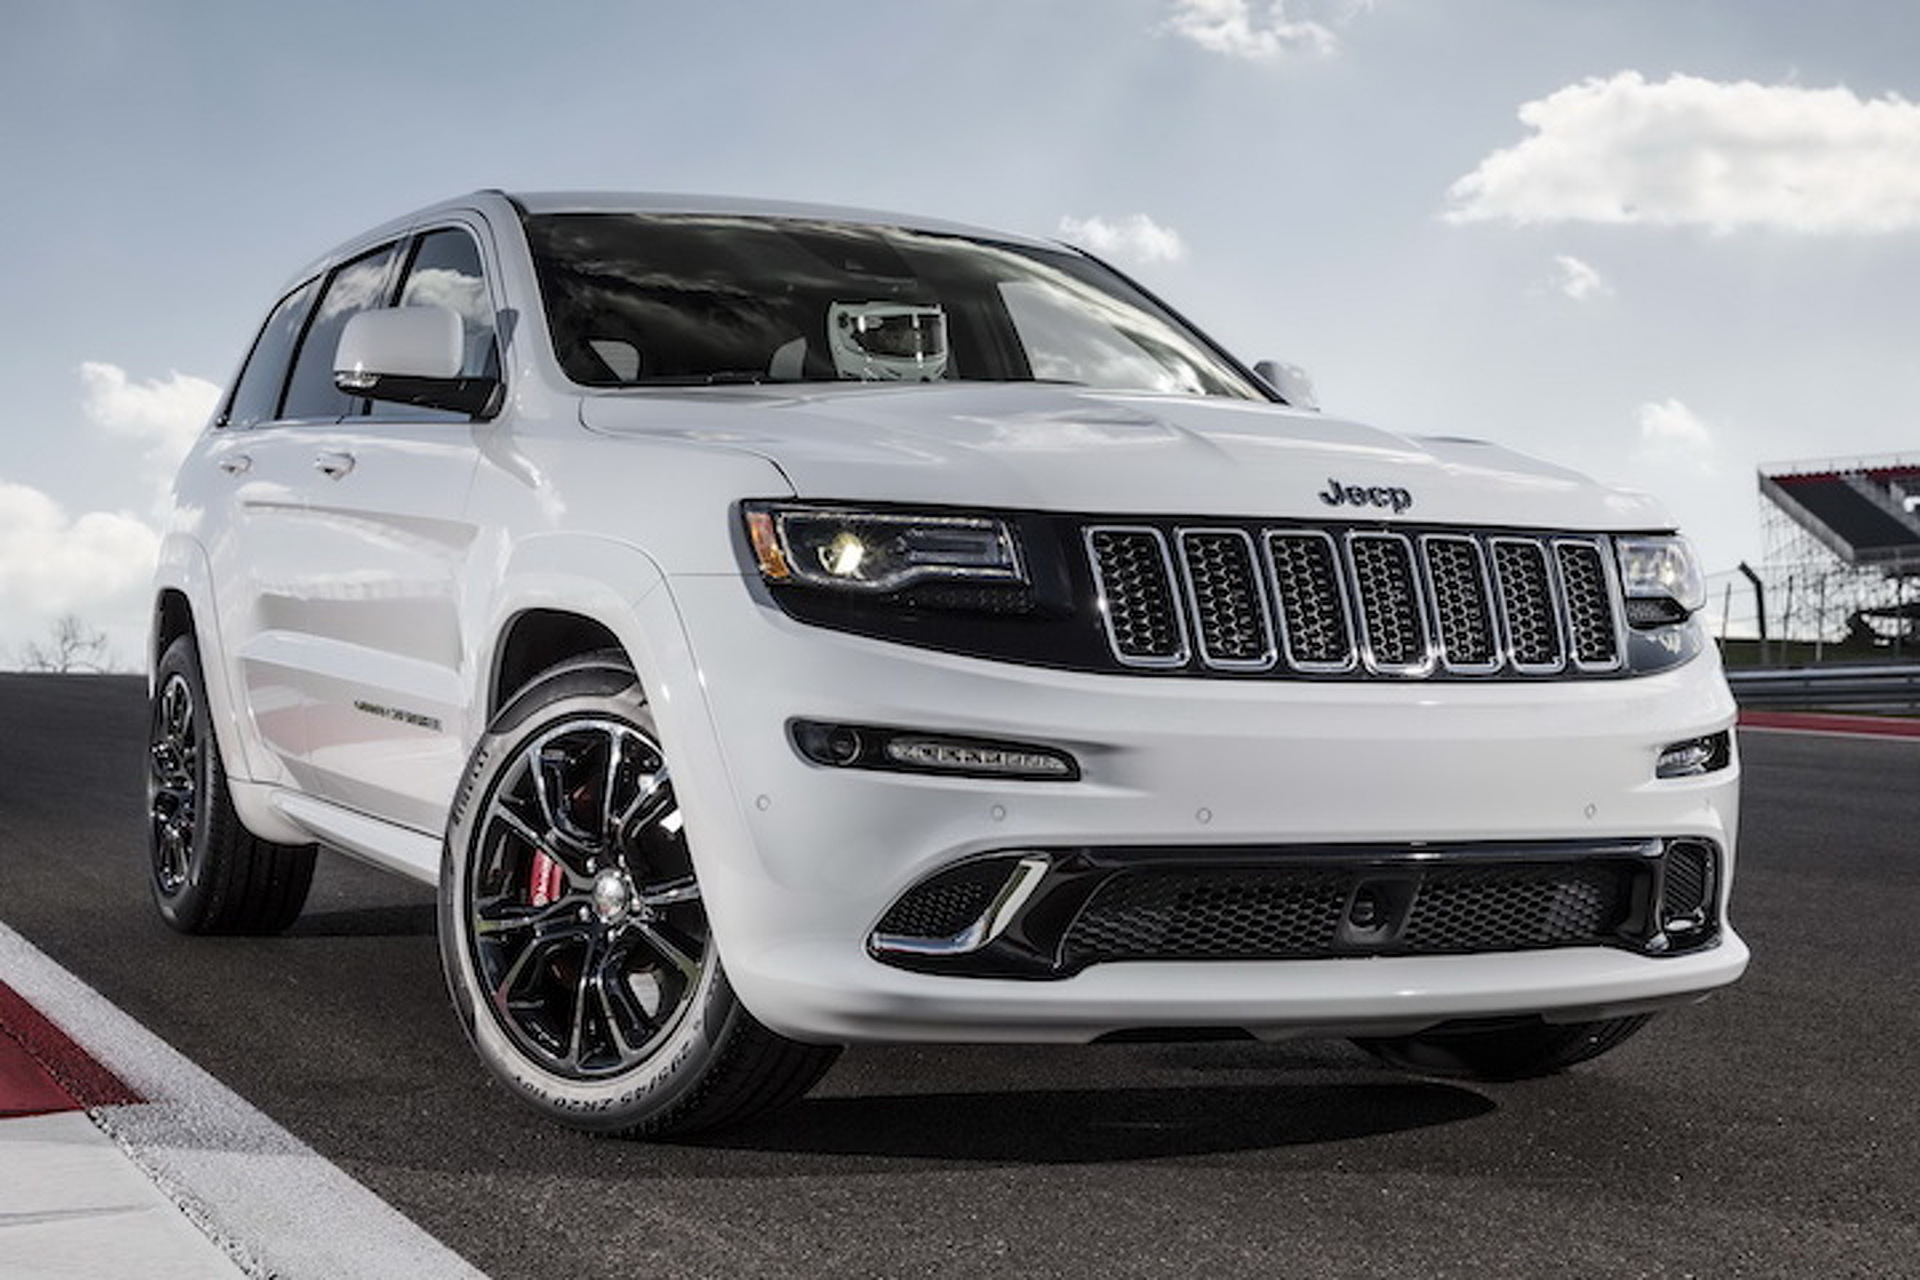 Could TrackHawk Be Jeep's Version of Hellcat?